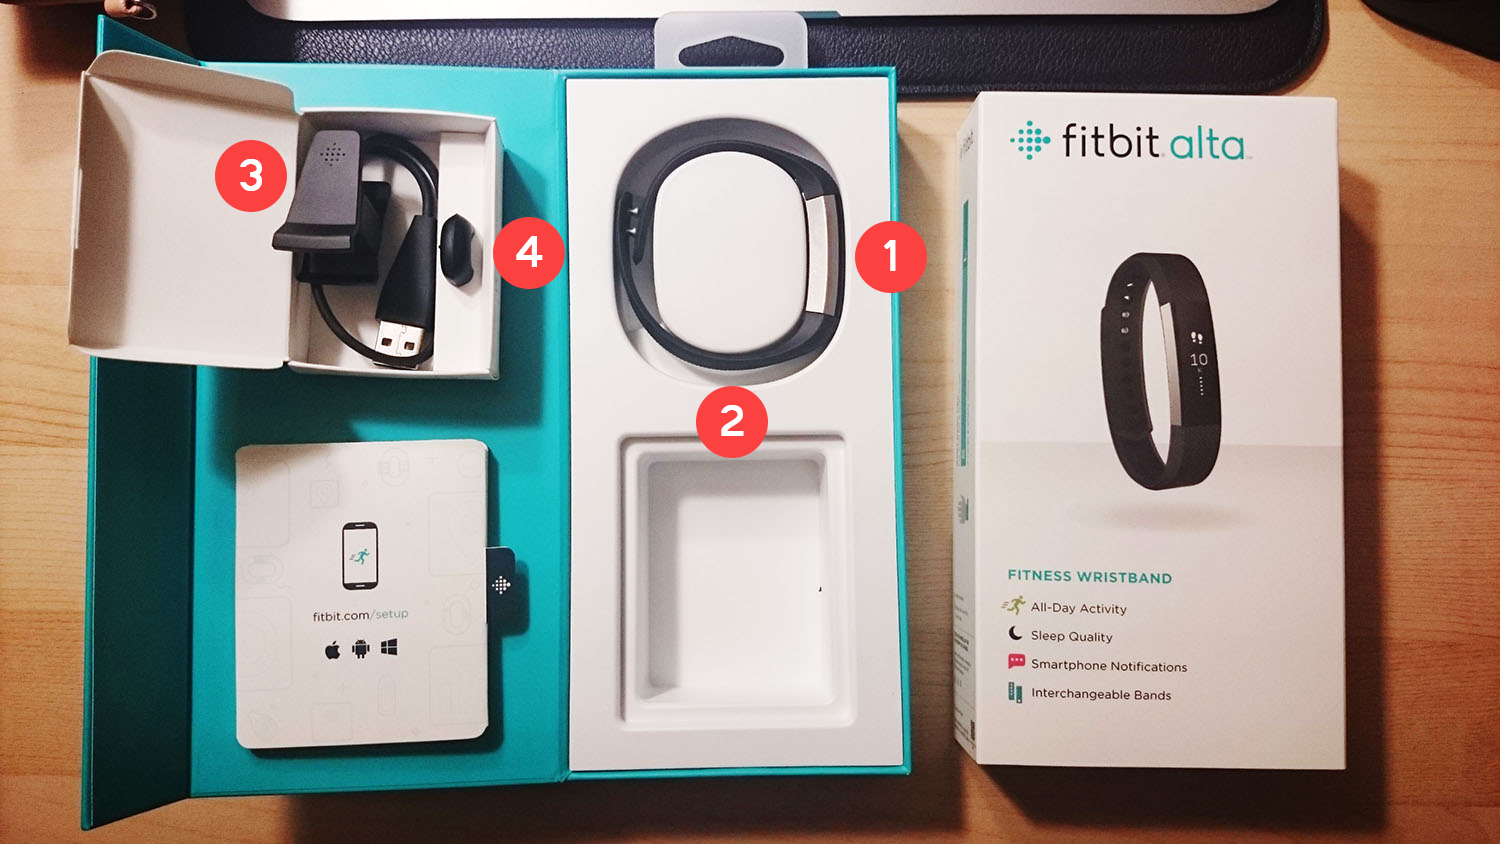 fitbit alta review pros and cons box content